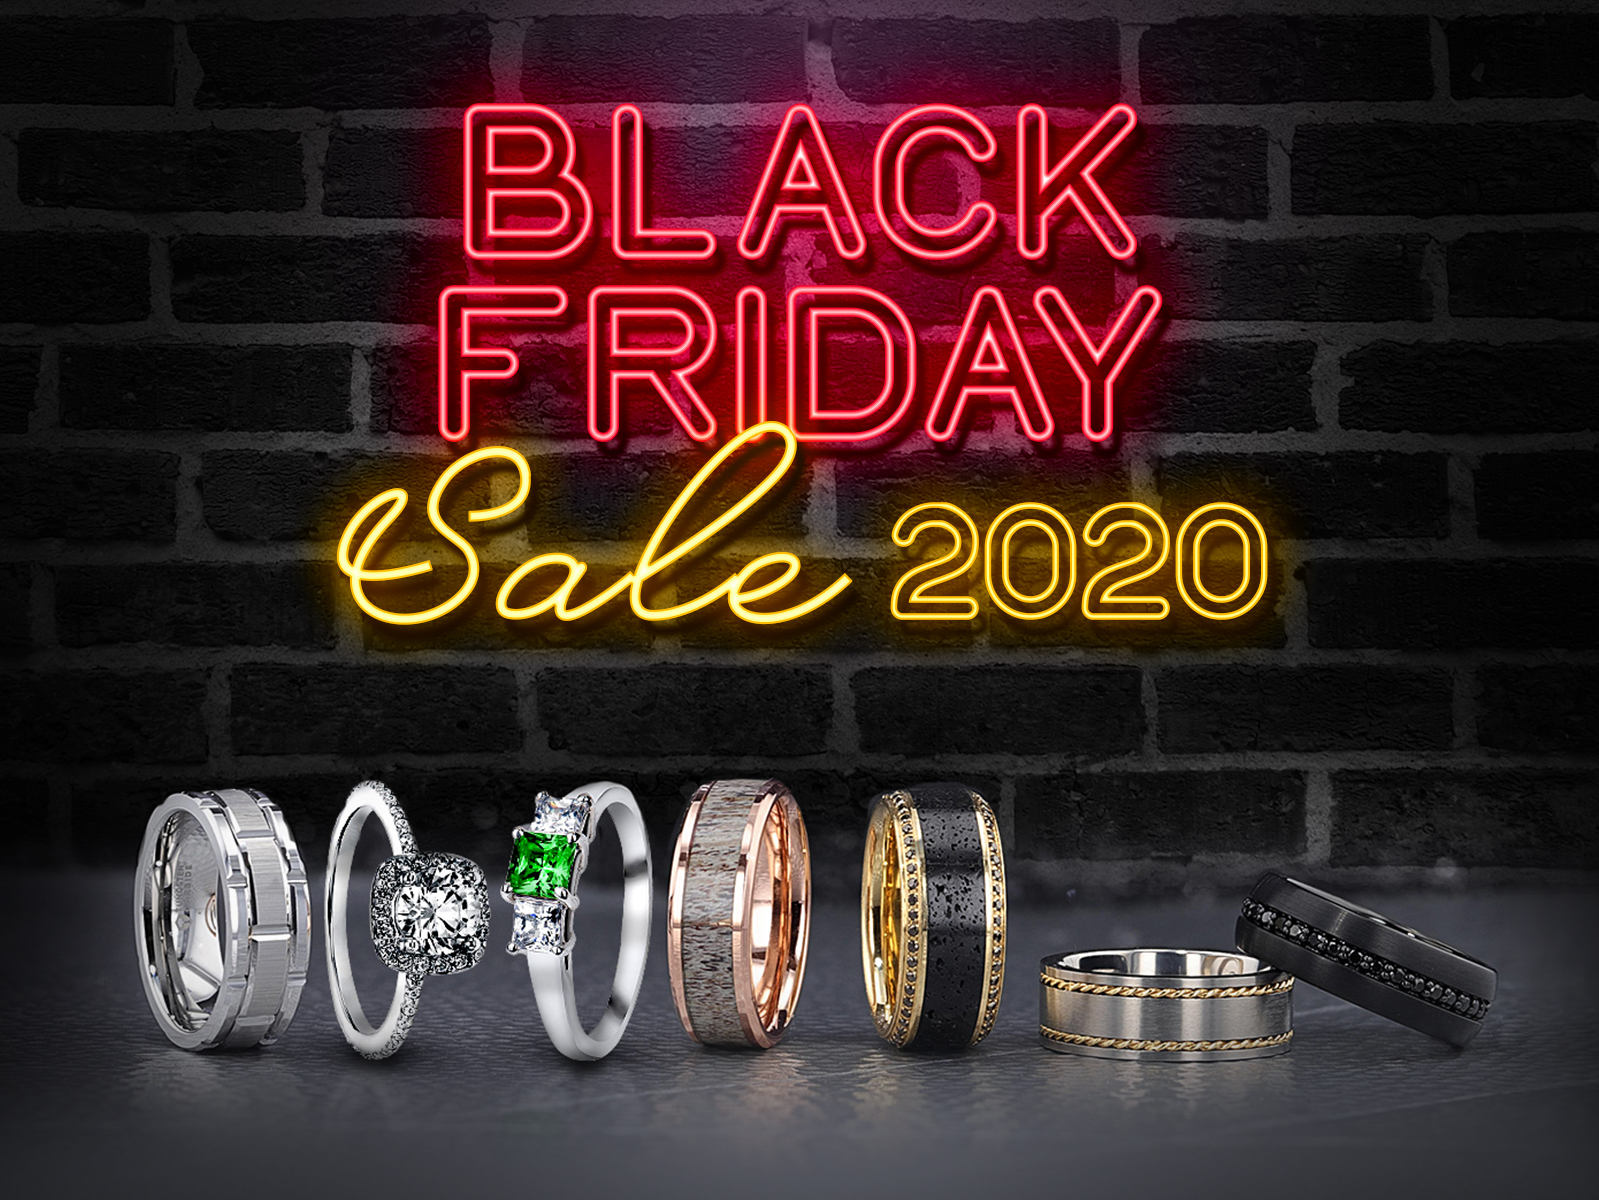 Introducing Our 2020 Black Friday Shopping Guide